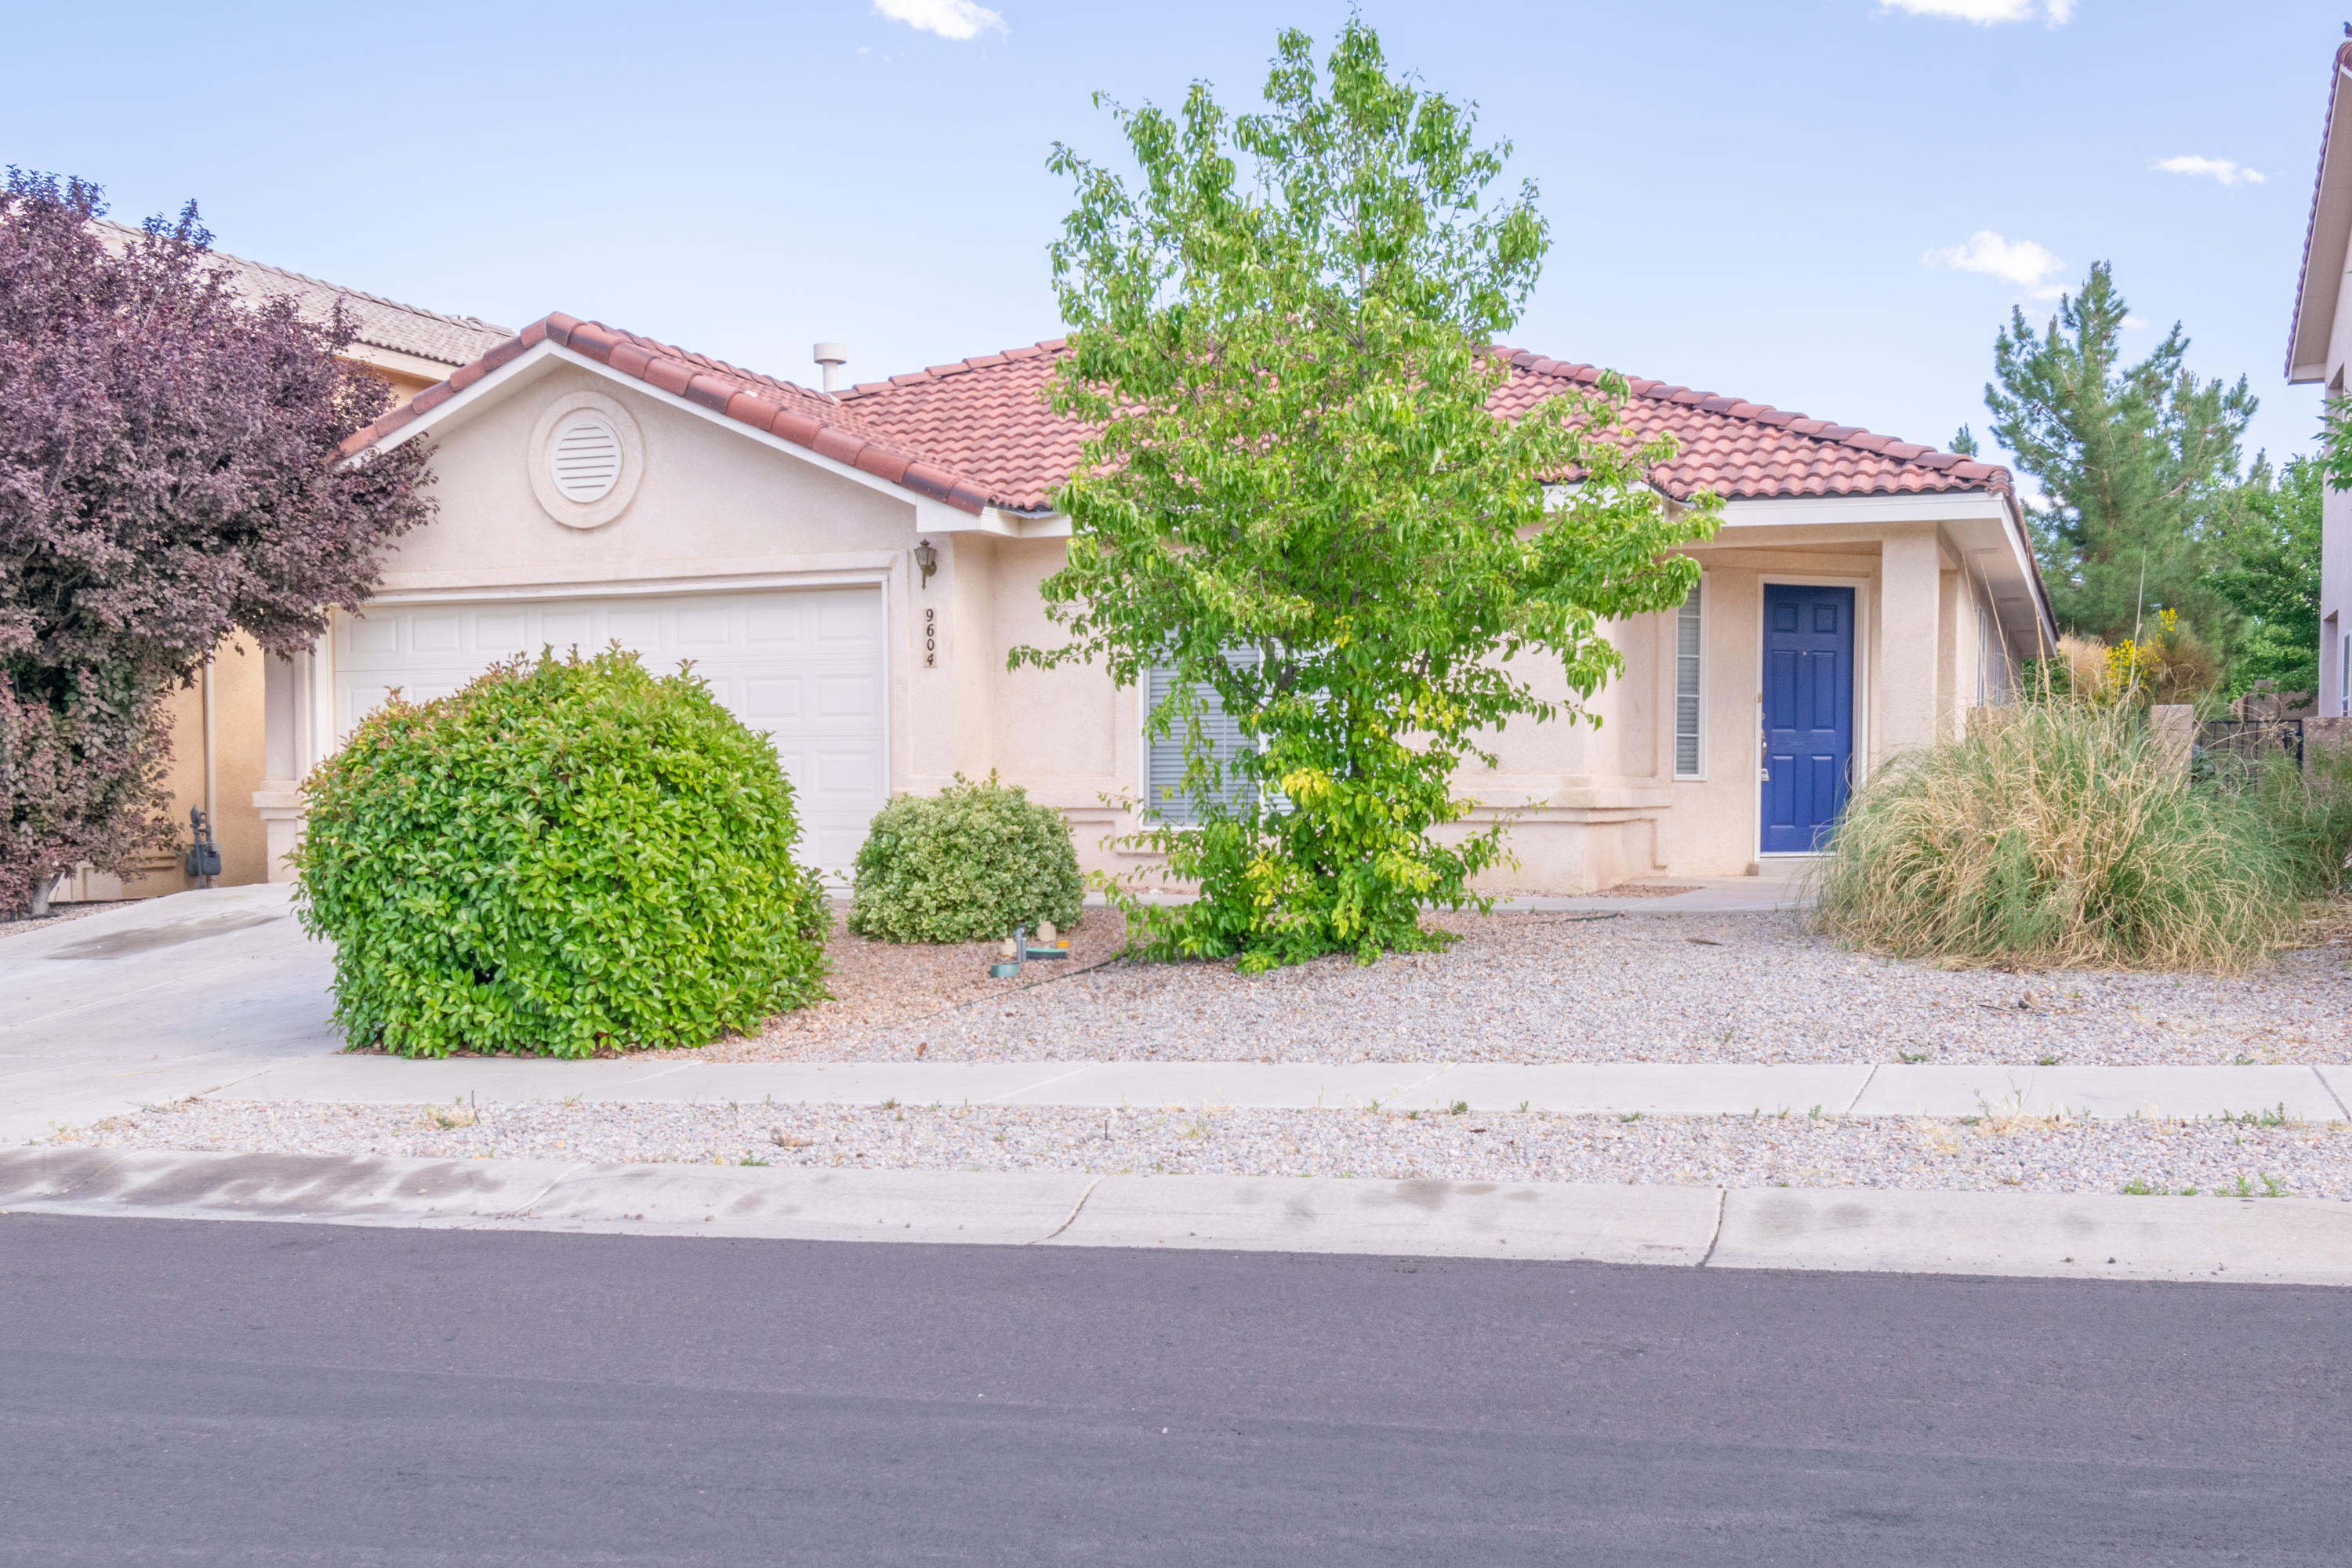 Beautiful 4 Bedroom, 2 bath home, newly painted, new carpet, 2 living areas,  tile roof, all ready for you to add your personal touch.  Cozy up against the two way fireplace in this open floor plan.  Easy to show!